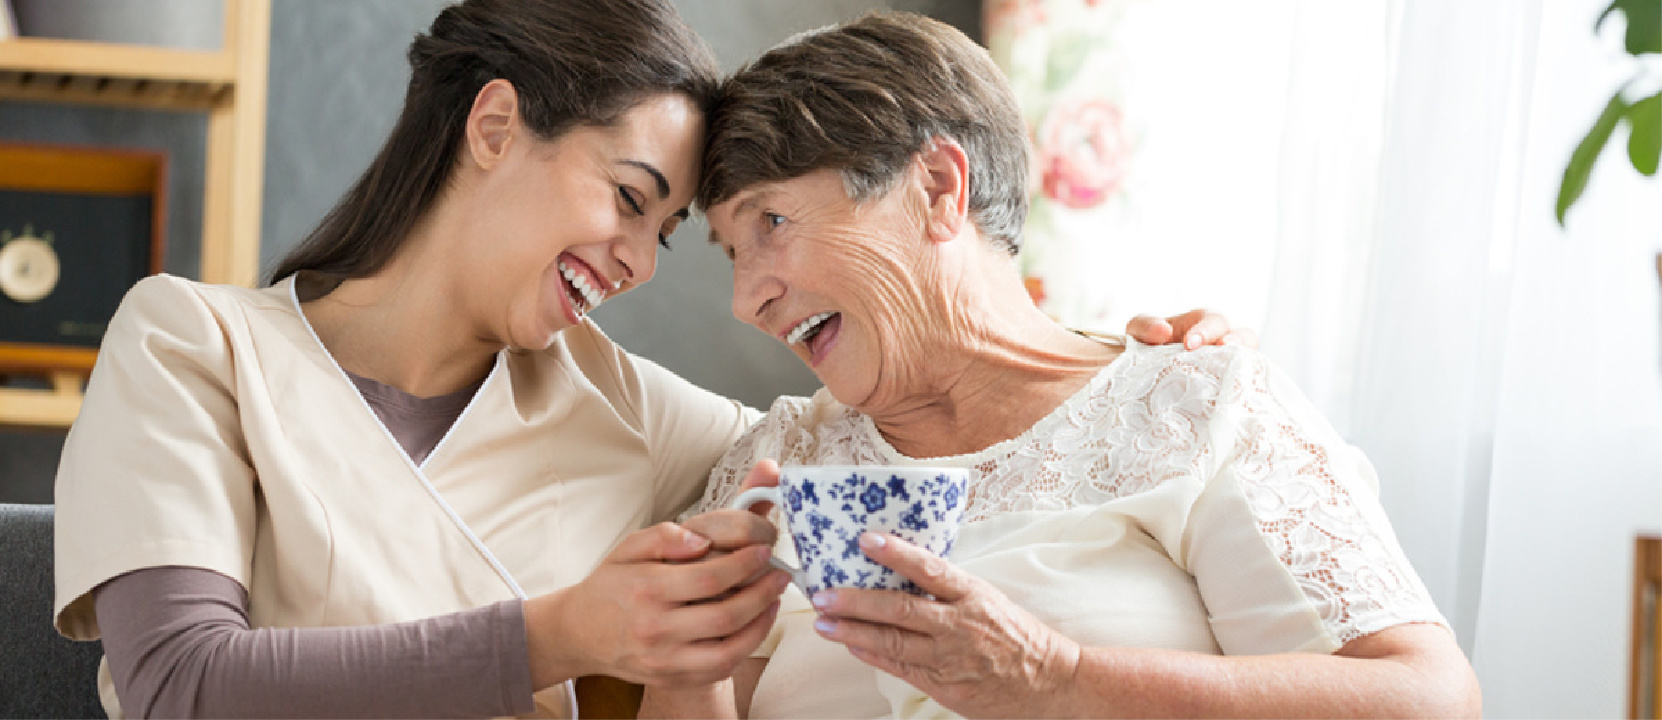 Home Care Service: Home Care Assistance